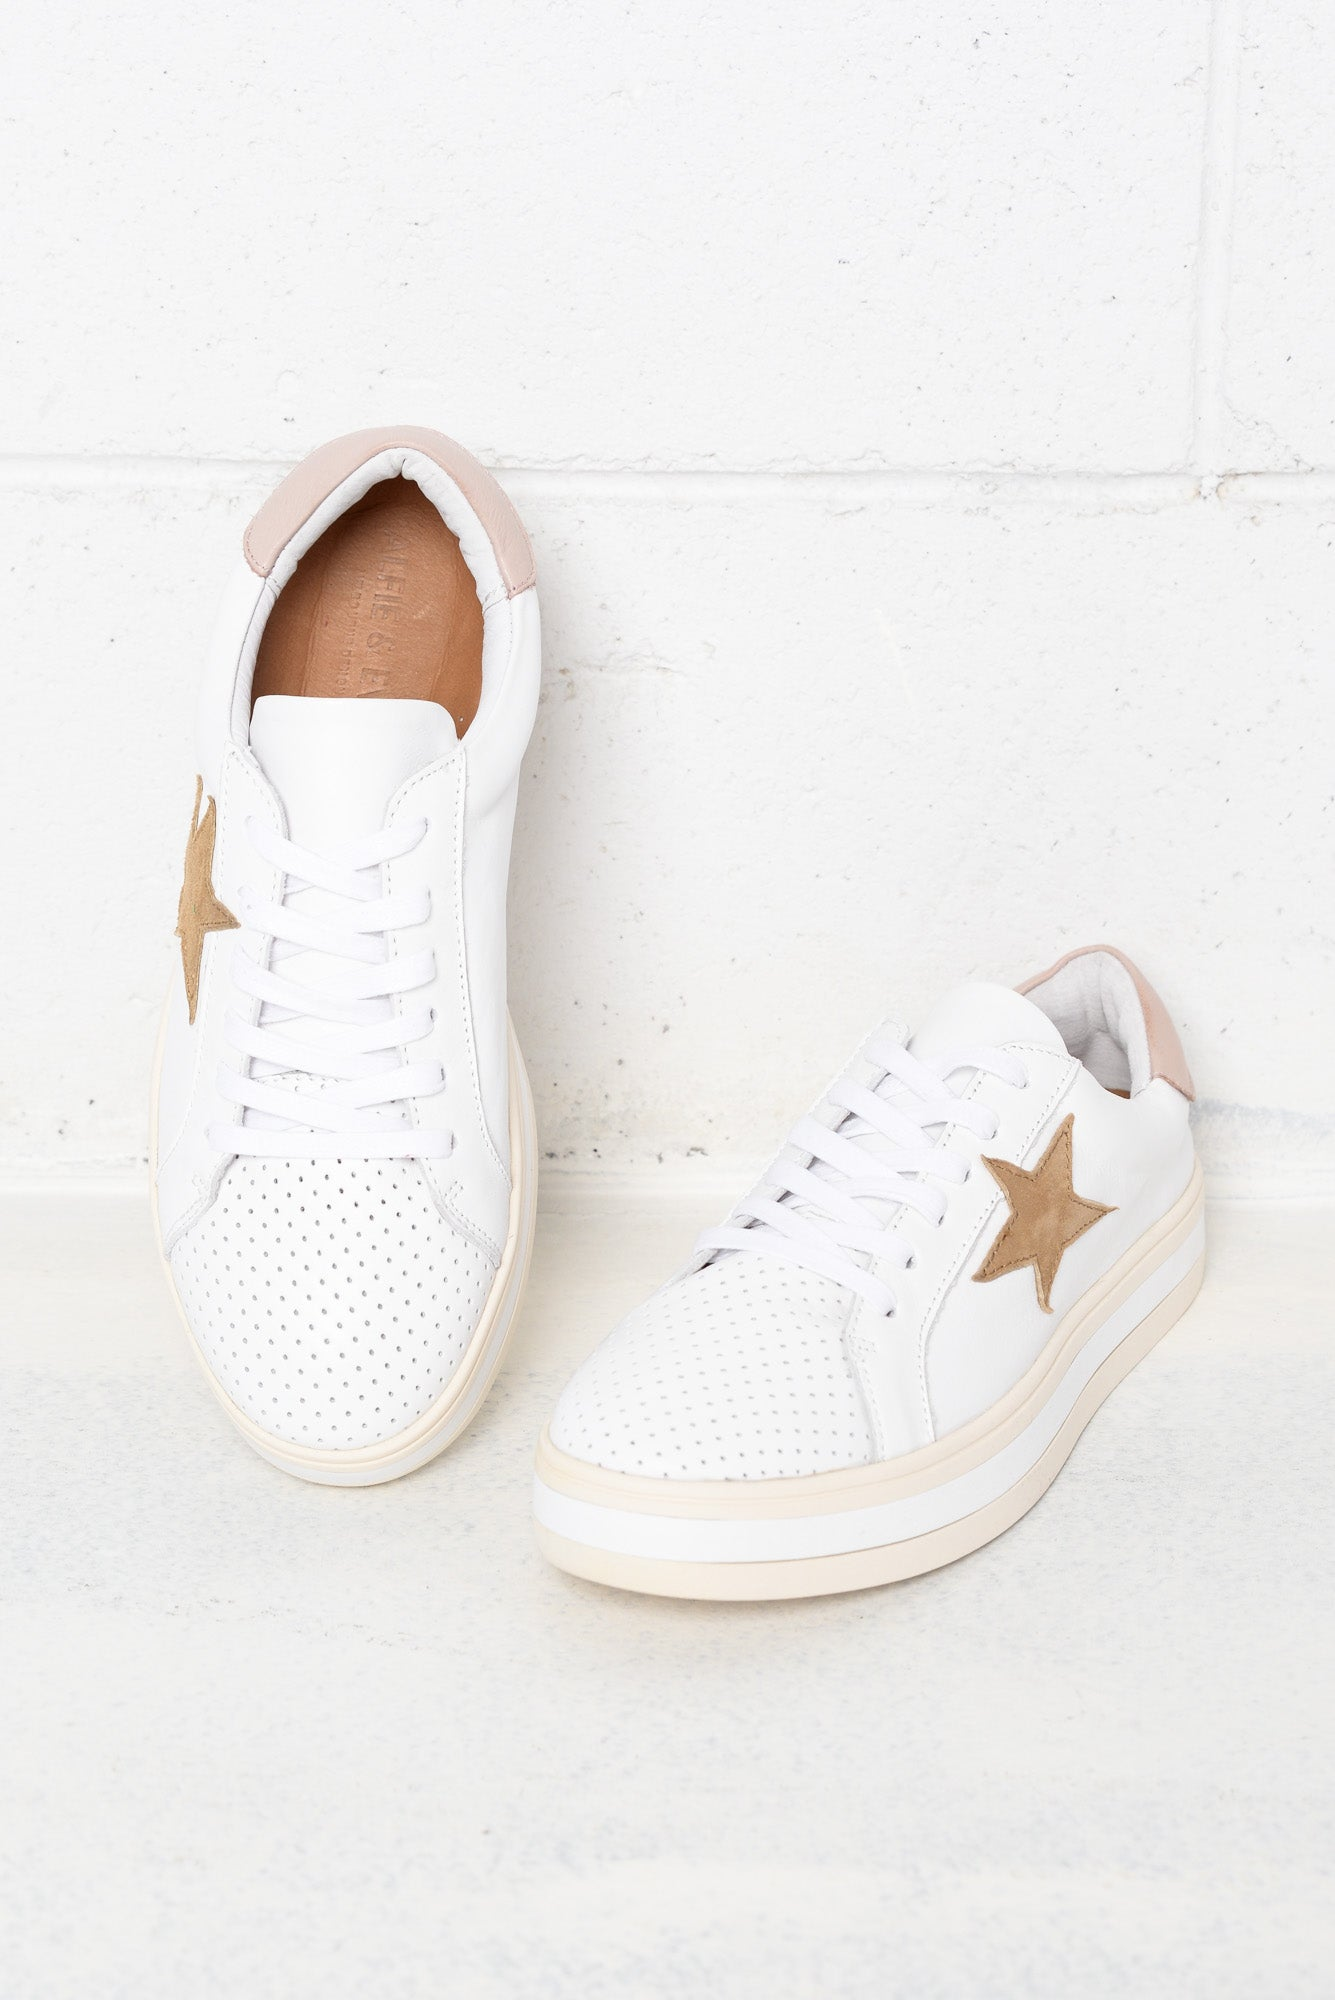 blush leather sneakers